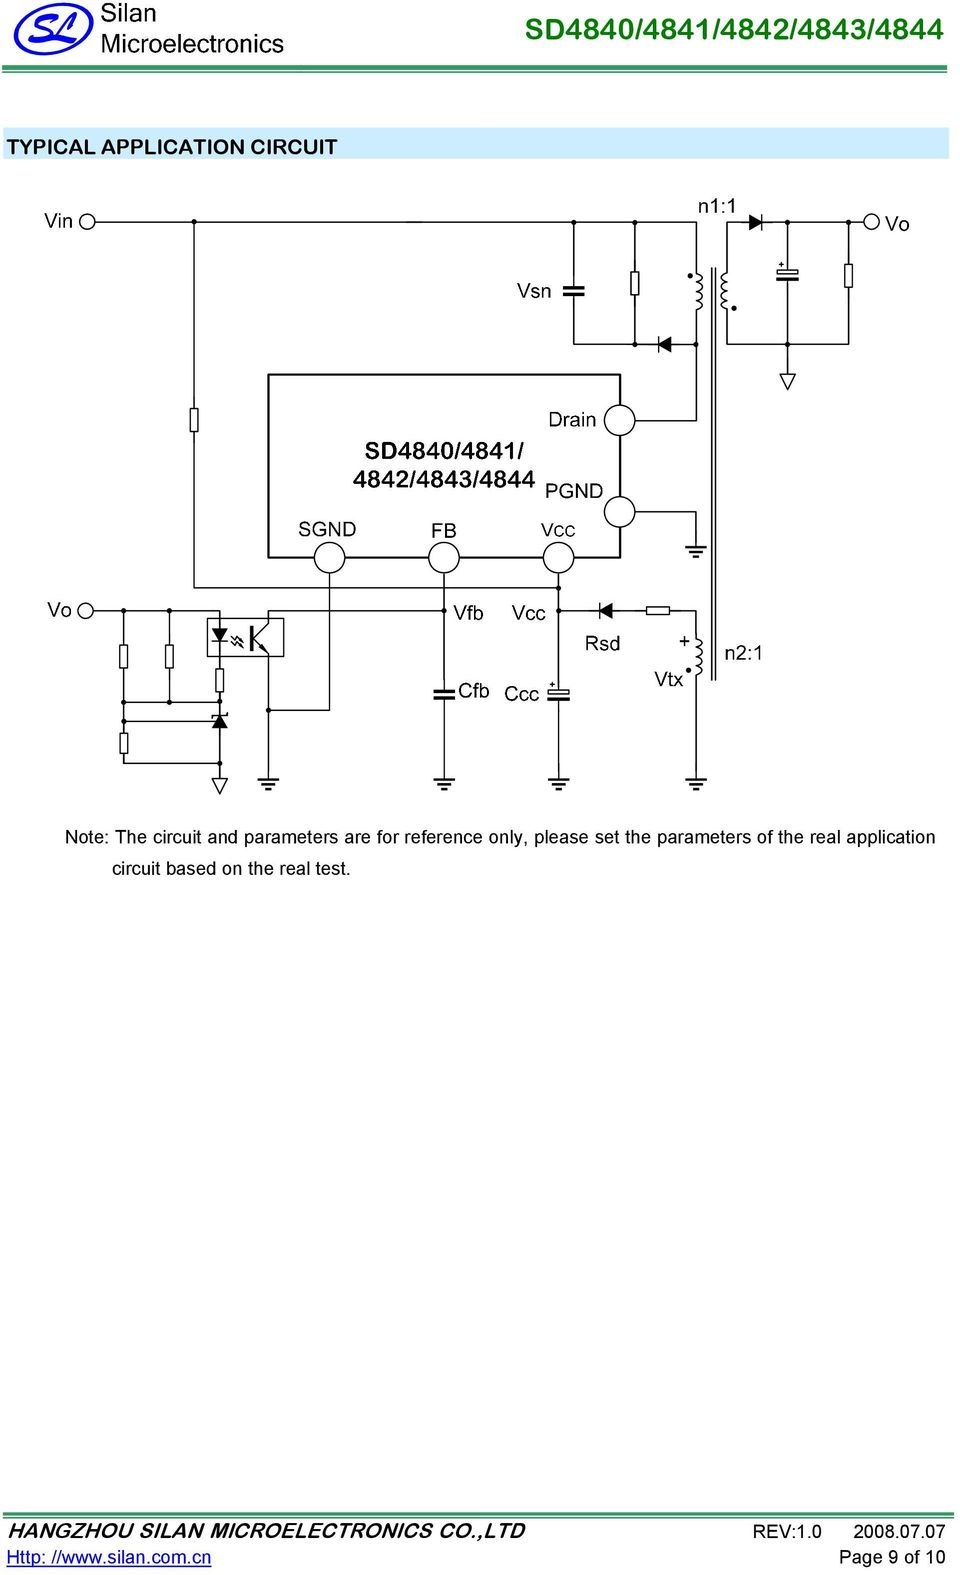 Sd4840 4841 4842 4843 Pdf Lm2576 In The Battery Charging Circuit Application Parameters Of Real Based